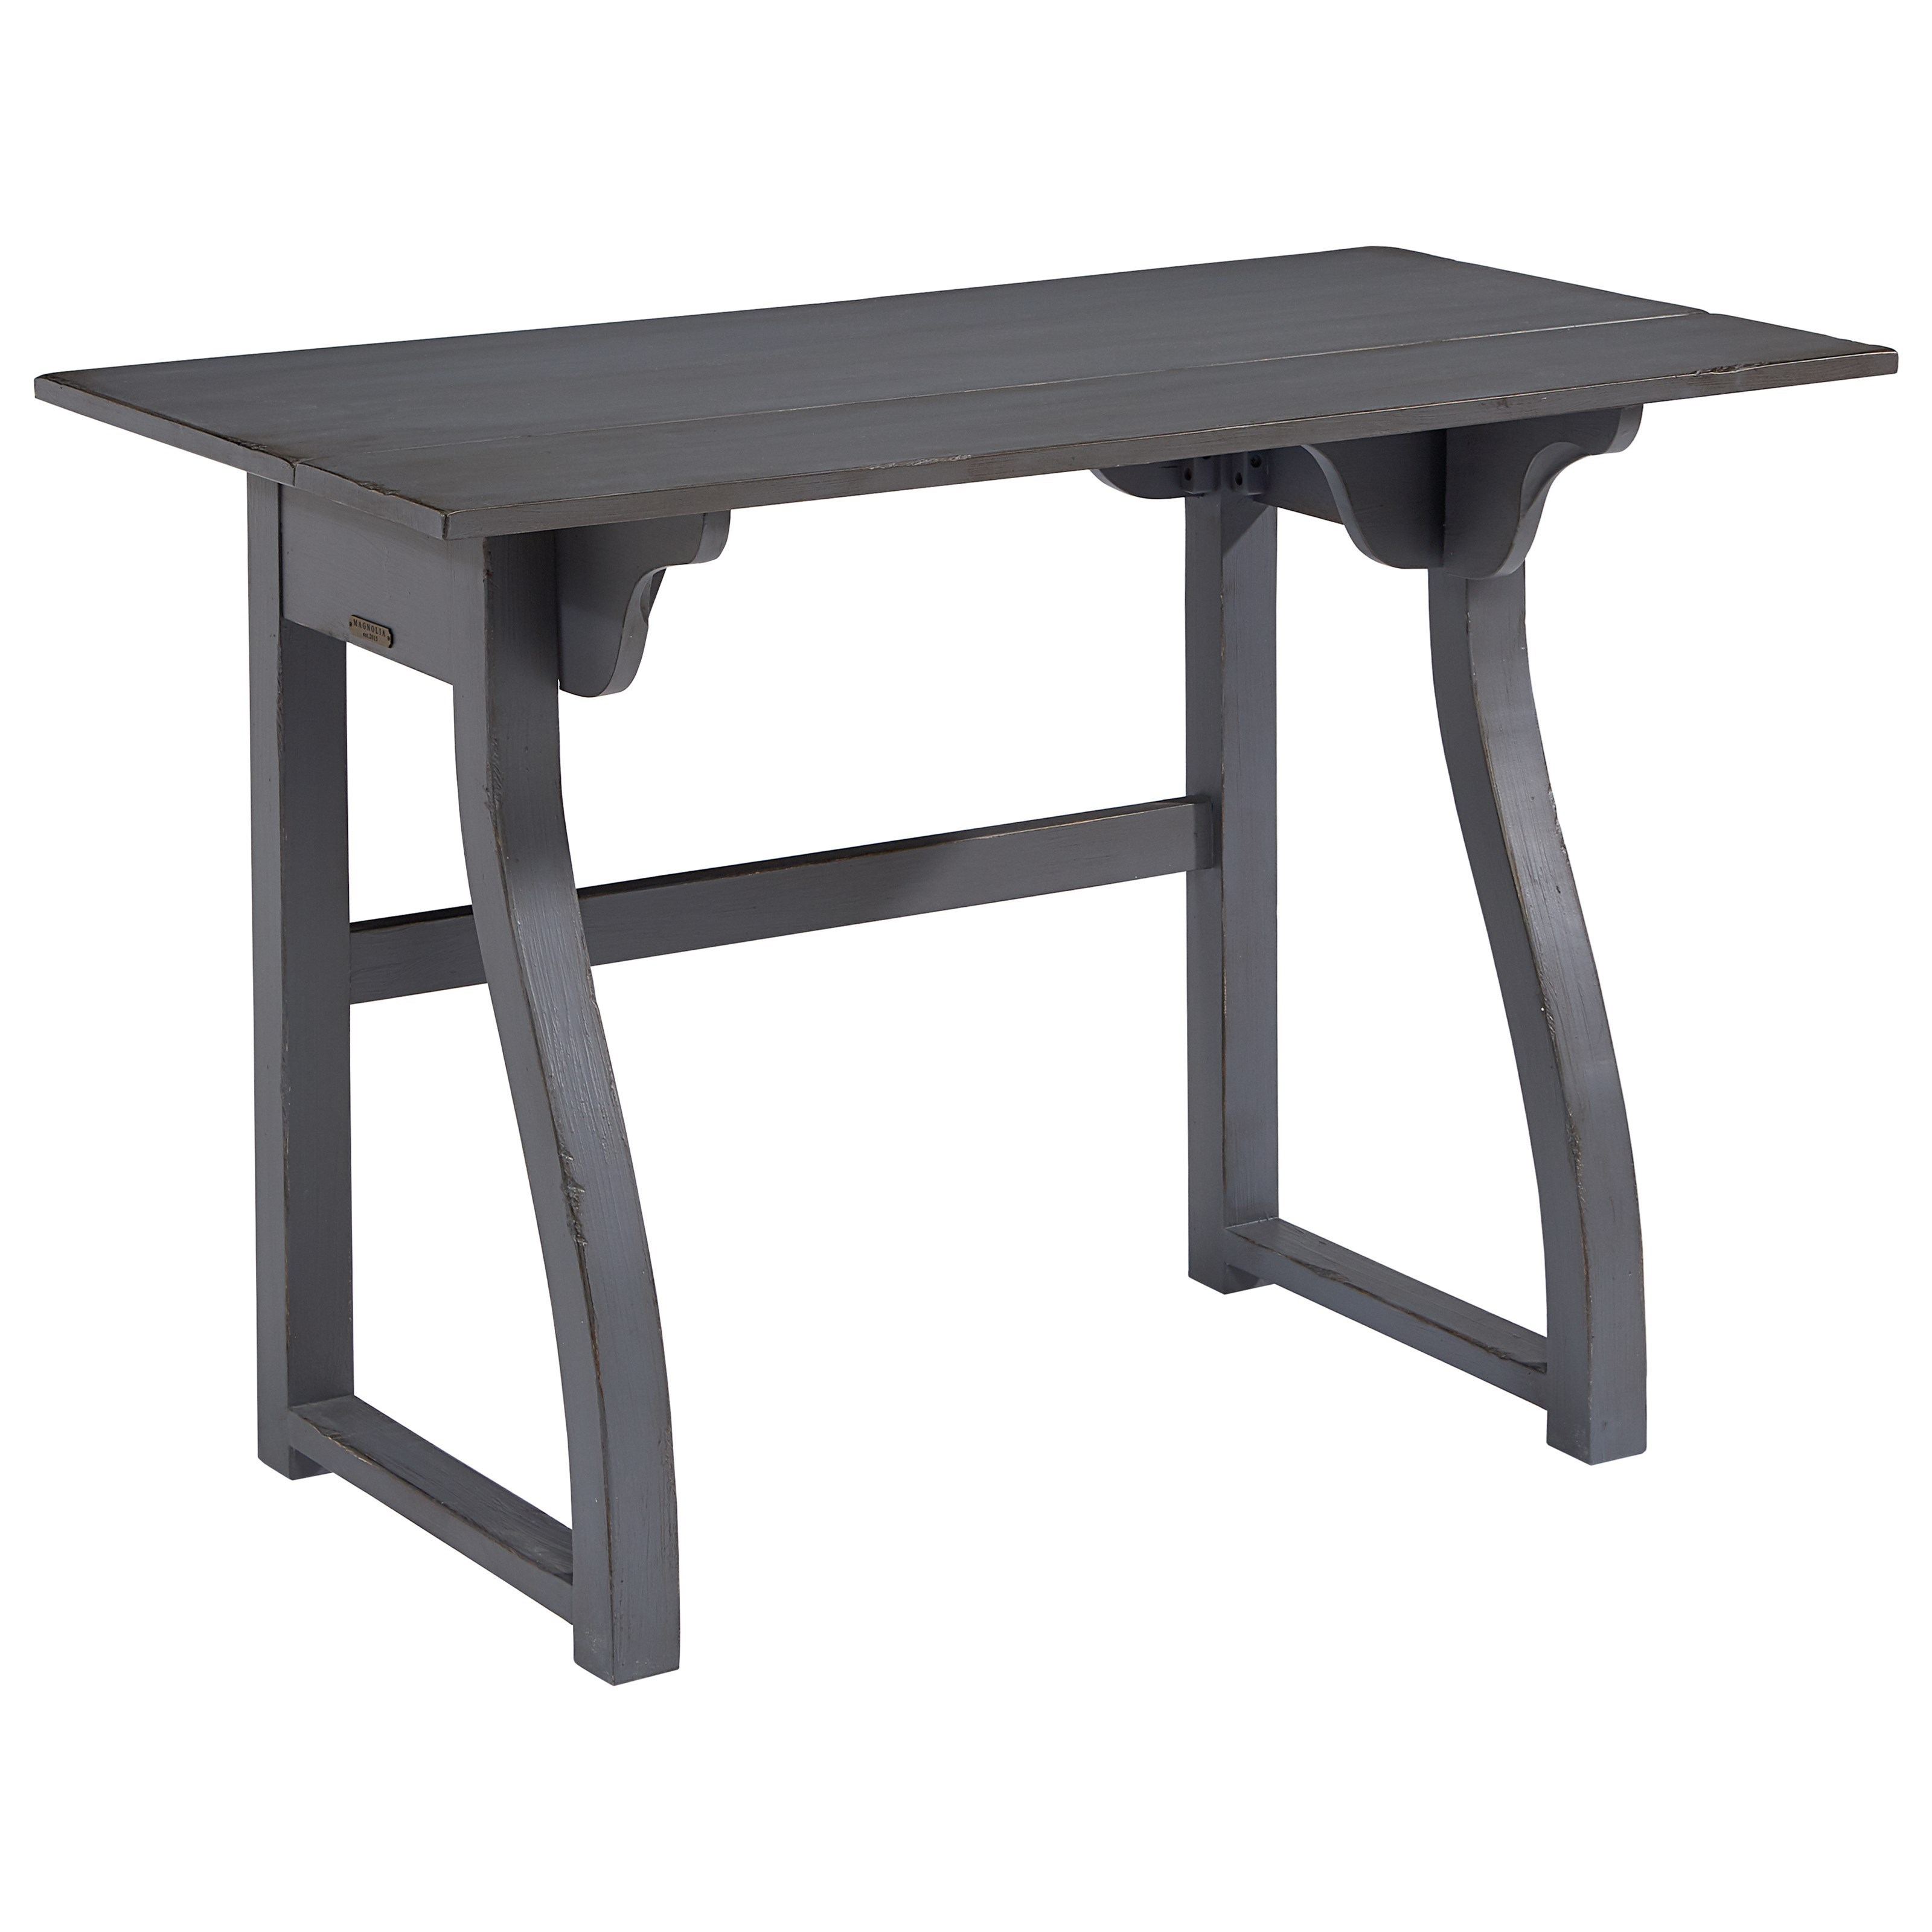 Magnolia Home by Joanna Gaines Accent Elements Desk with Curvy Legs - Item Number: 8030103E